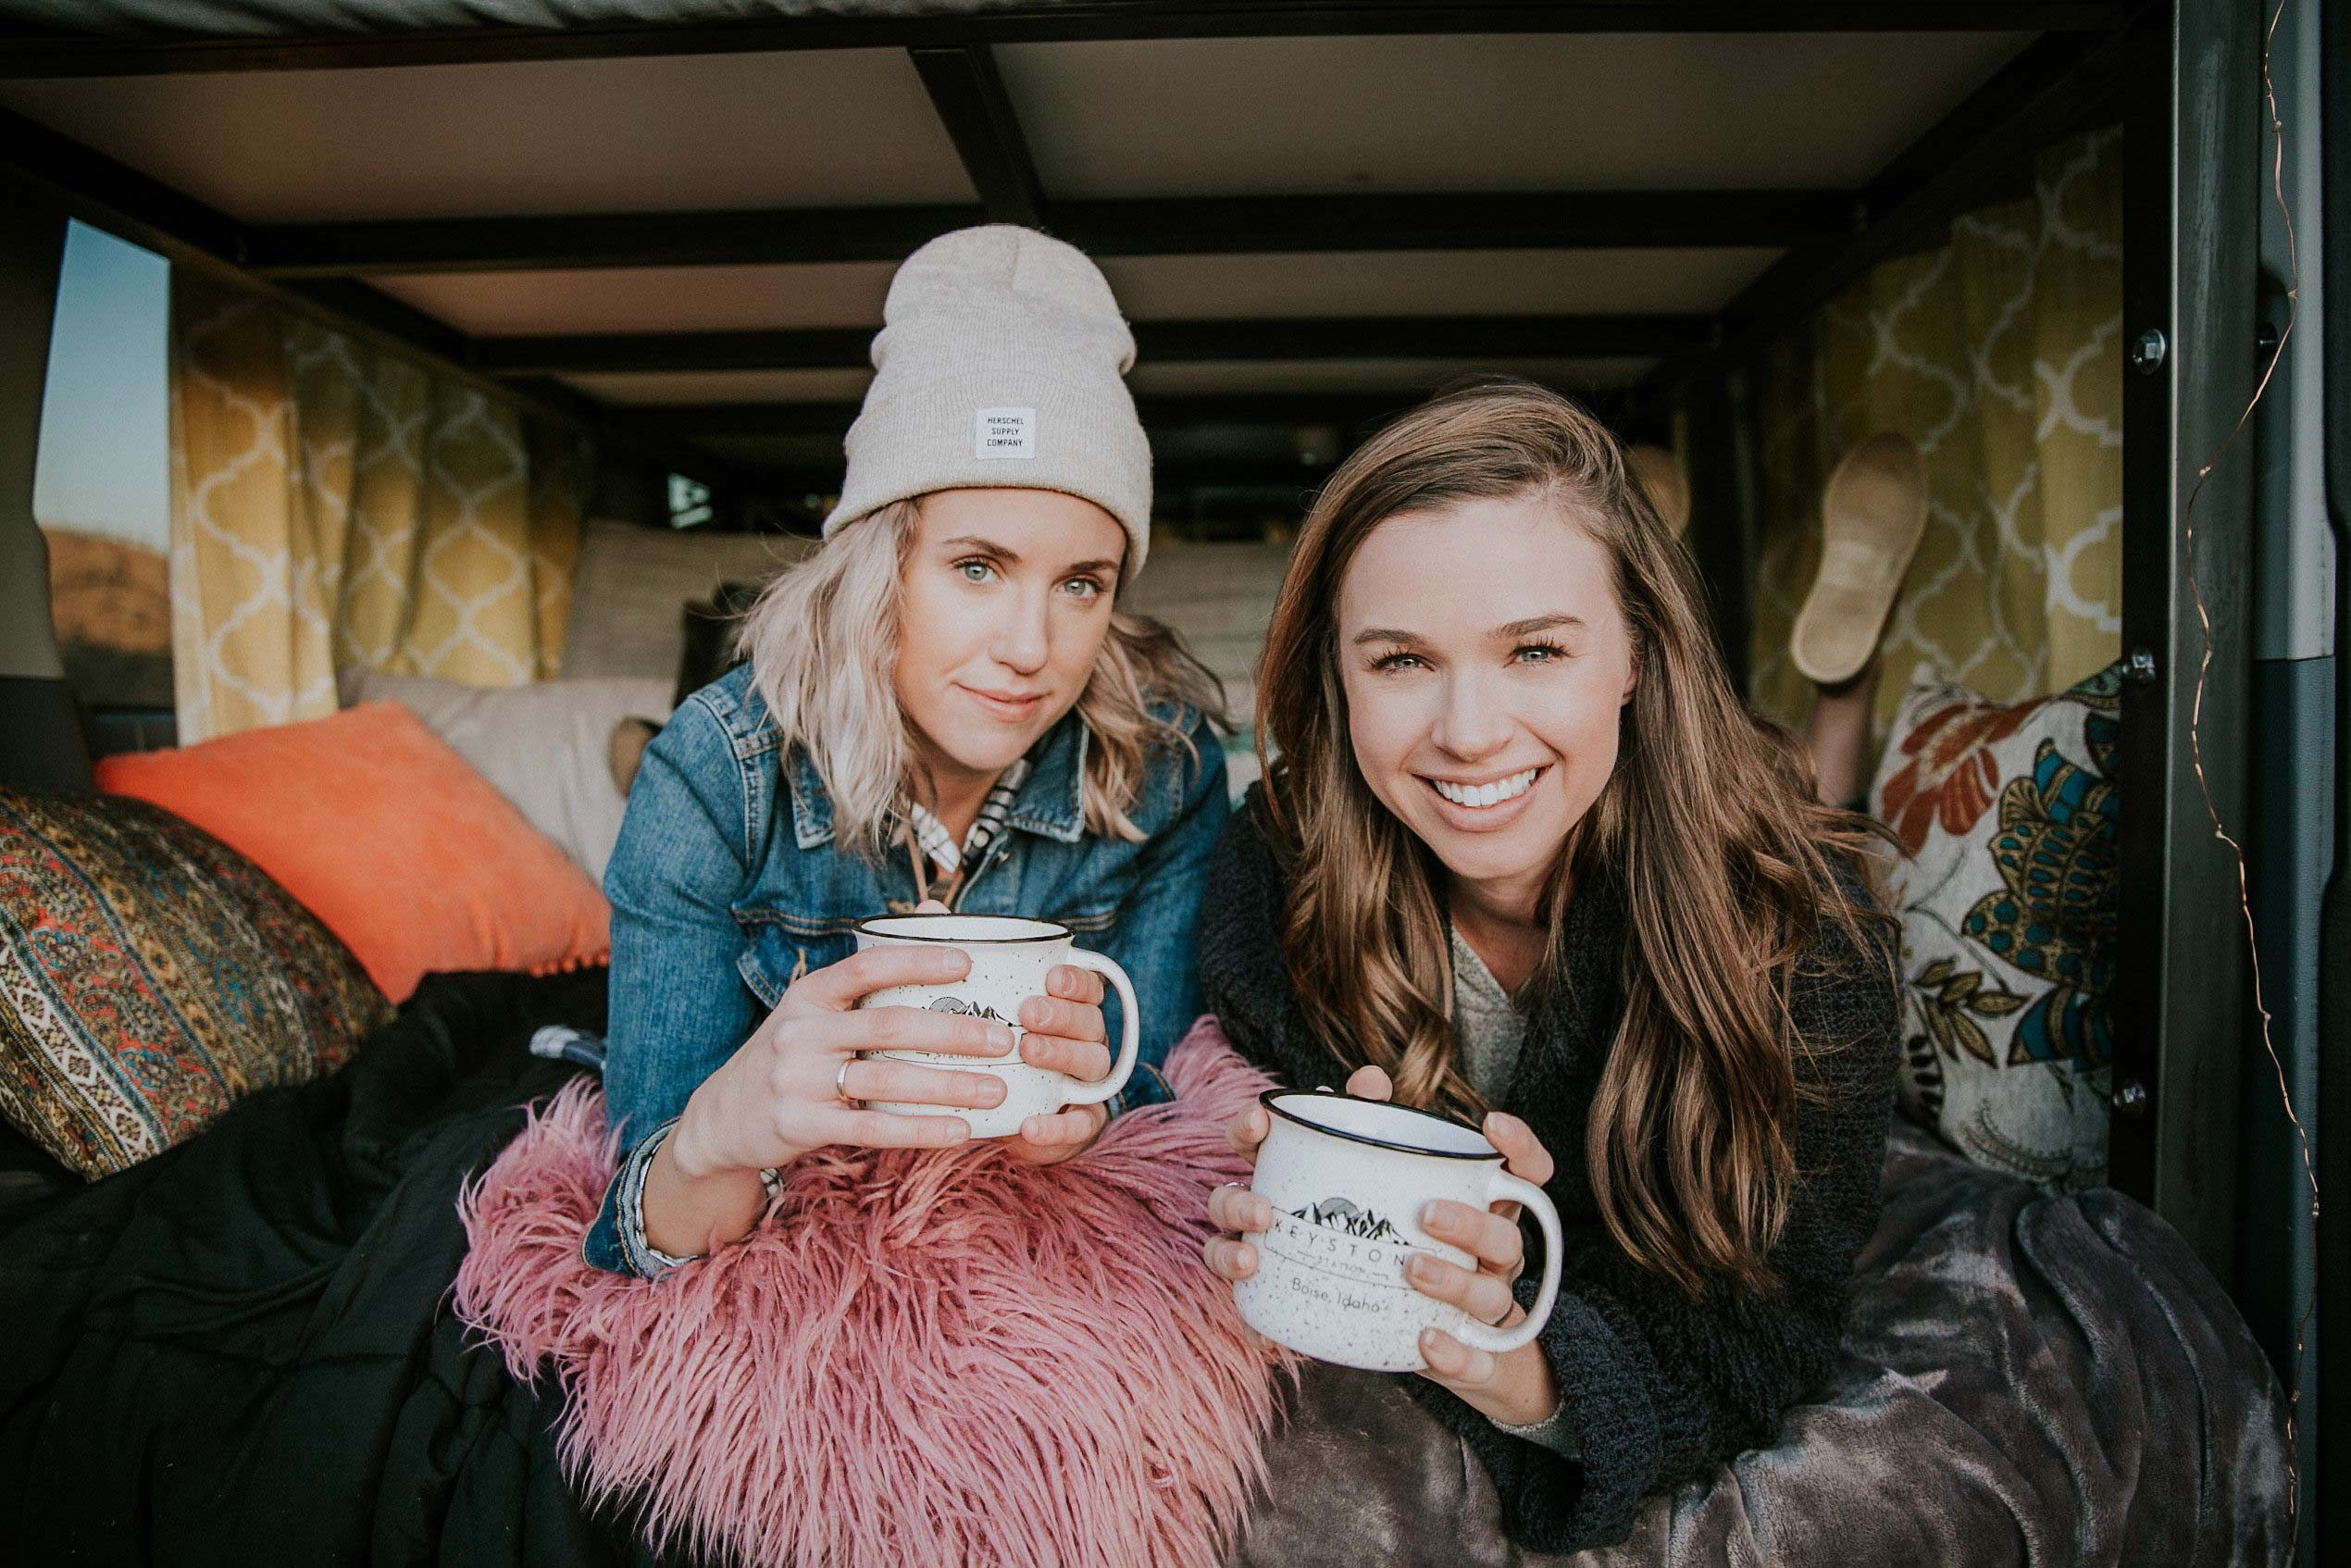 Image result for Swank boutique boise idaho